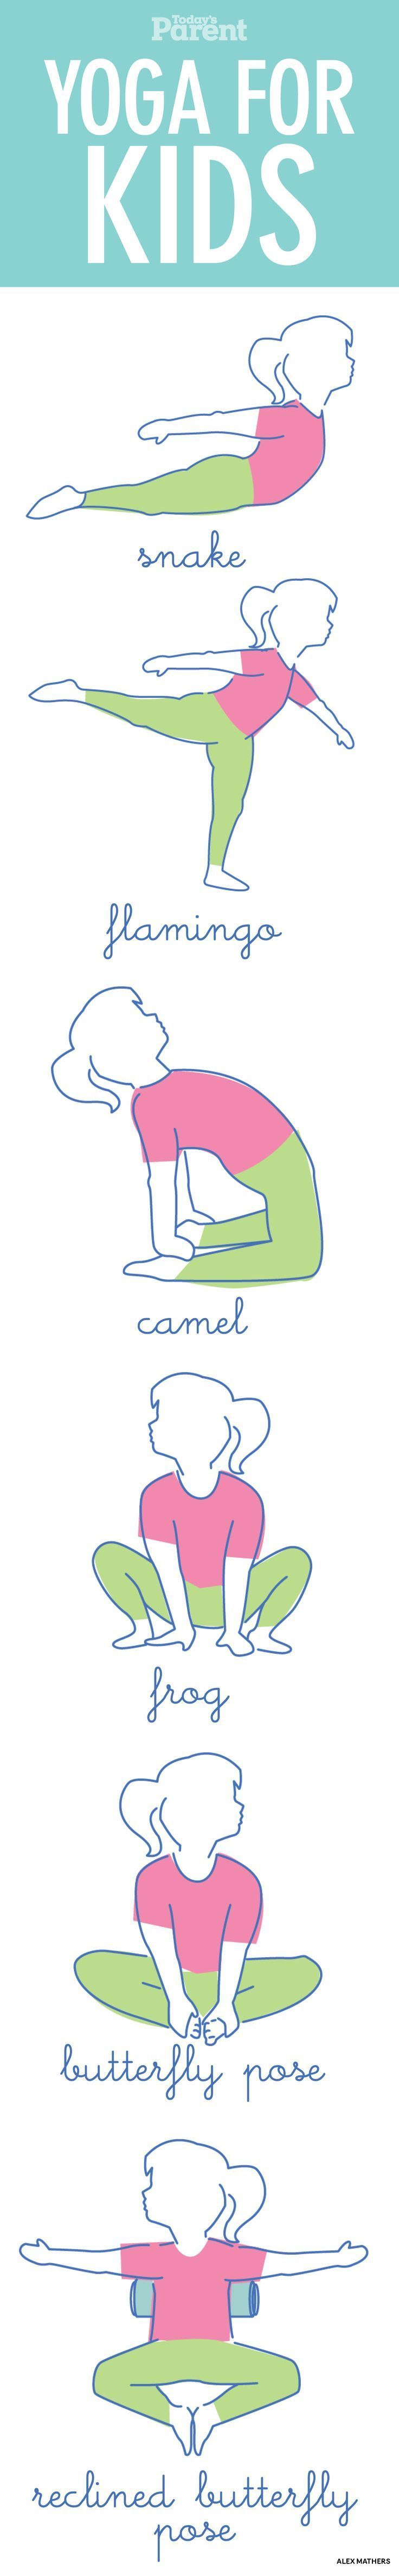 Adults arent the only ones who are stressed. Find out how yoga can be used to help kids combat anxiety. Plus, learn simple poses to practice at home.